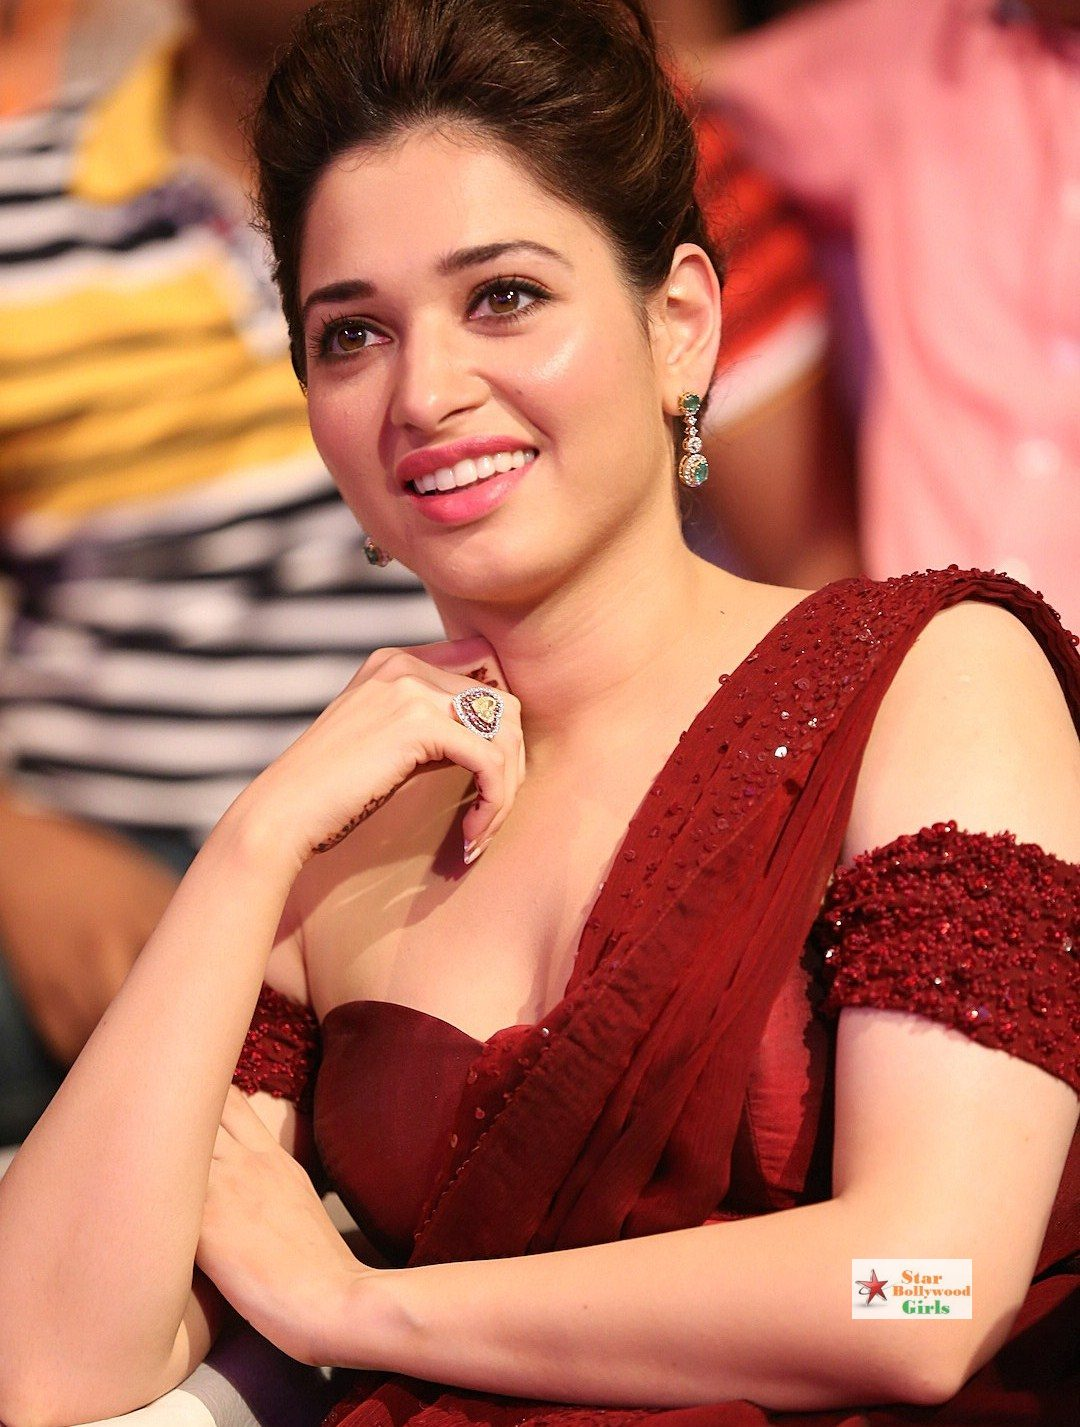 Tamannaah Bhatia Super Sexy Skin Show In Maroon Dress At Baahubali Audio Release Event6